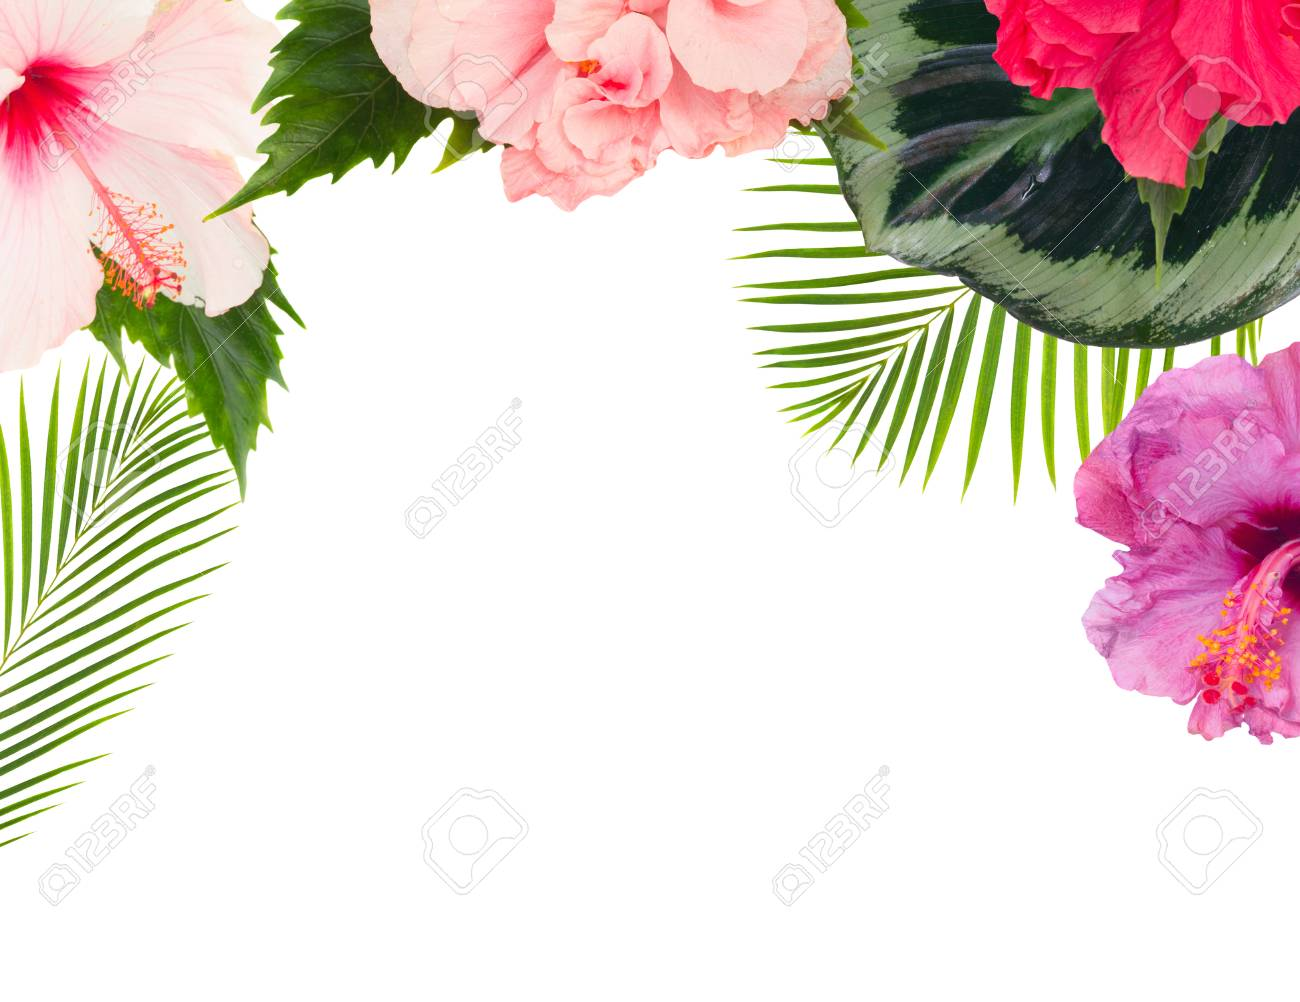 Tropical Flowers And Leaves Border Of Fresh Multicilored Hibiscus